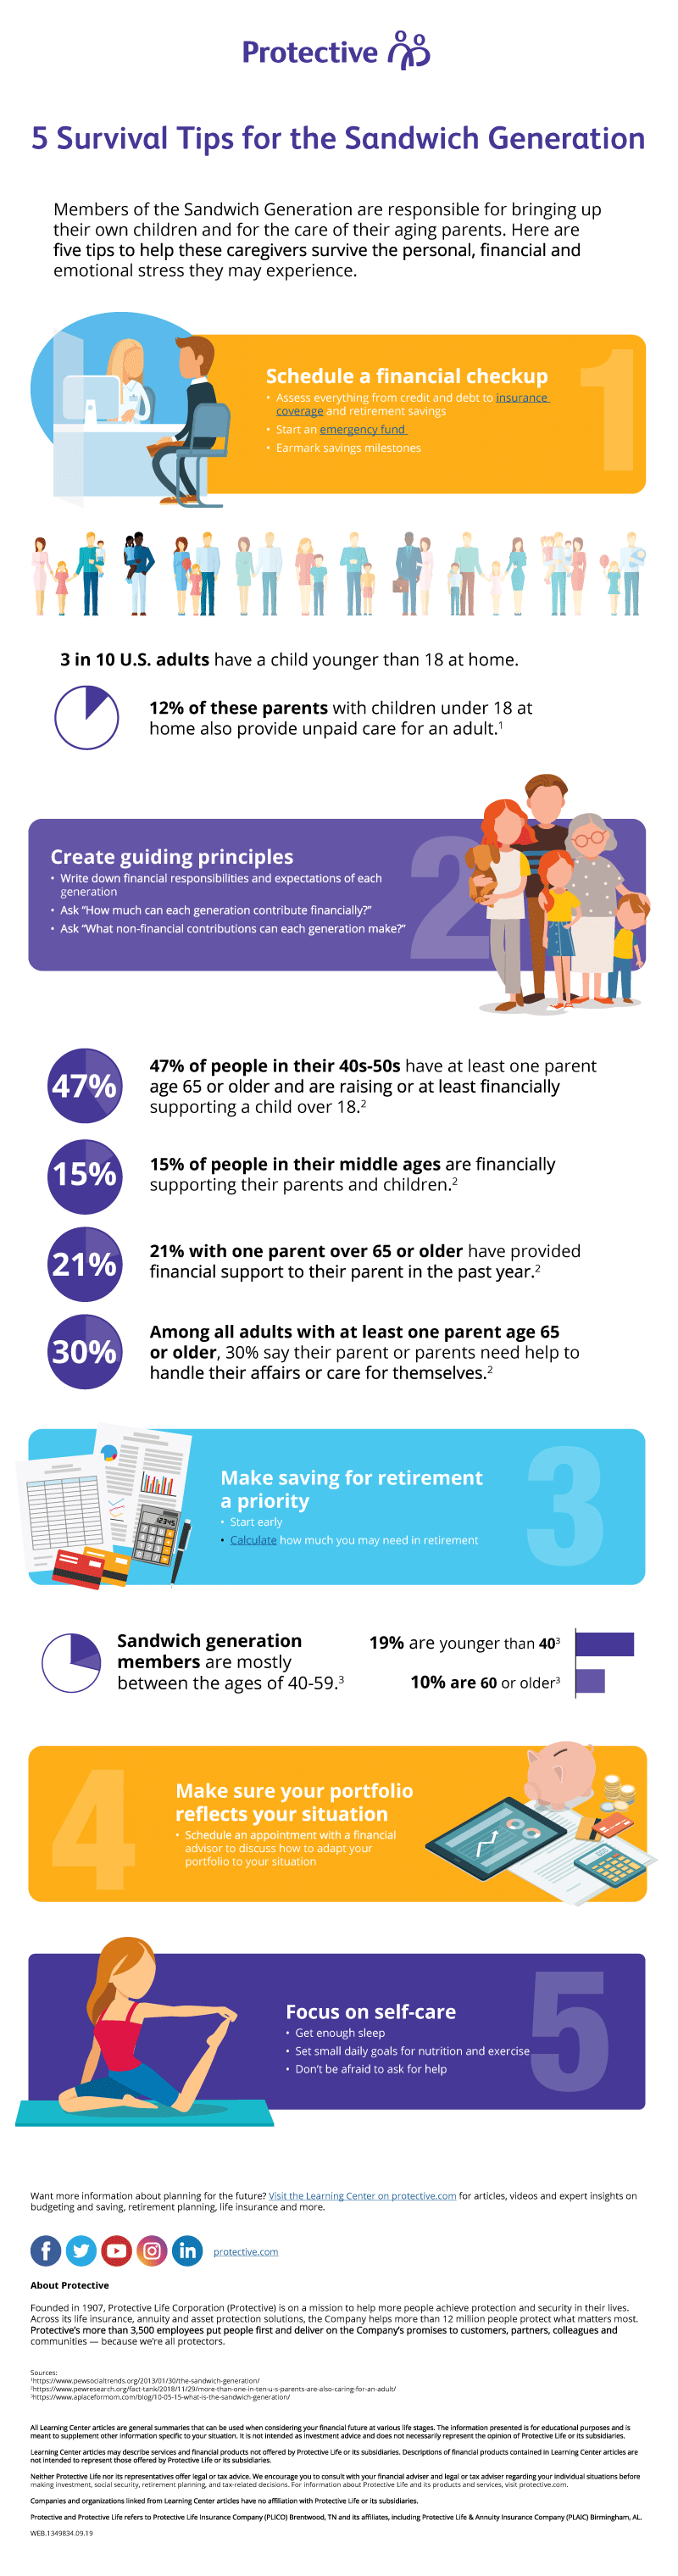 Sandwich generation tips infographic - Click to download PDF